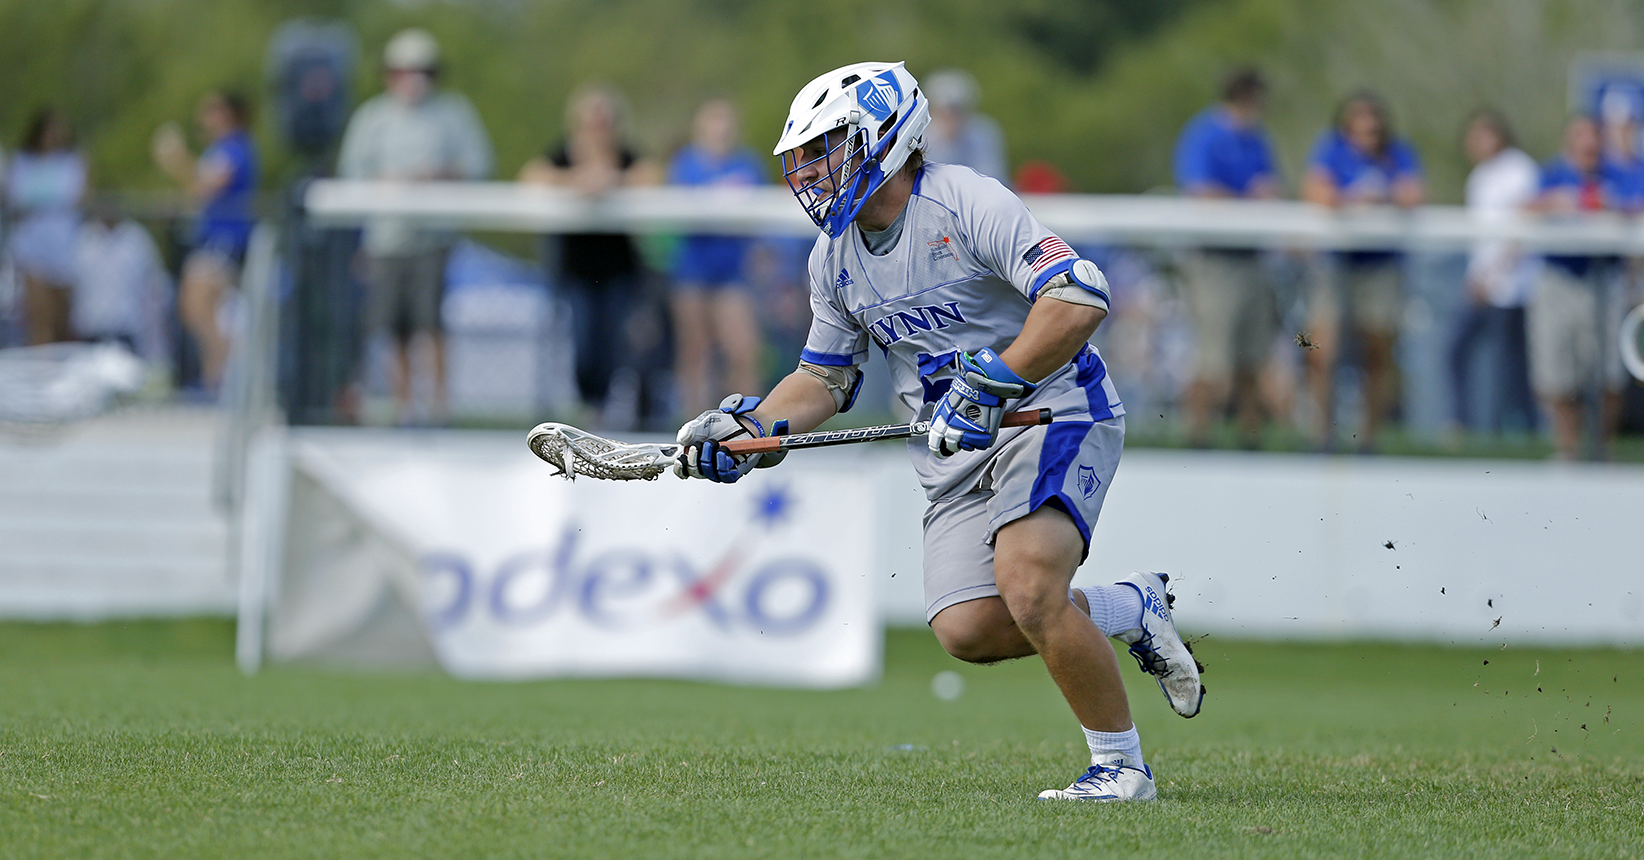 No. 12 Lacrosse Outmatched by No. 2 Saints